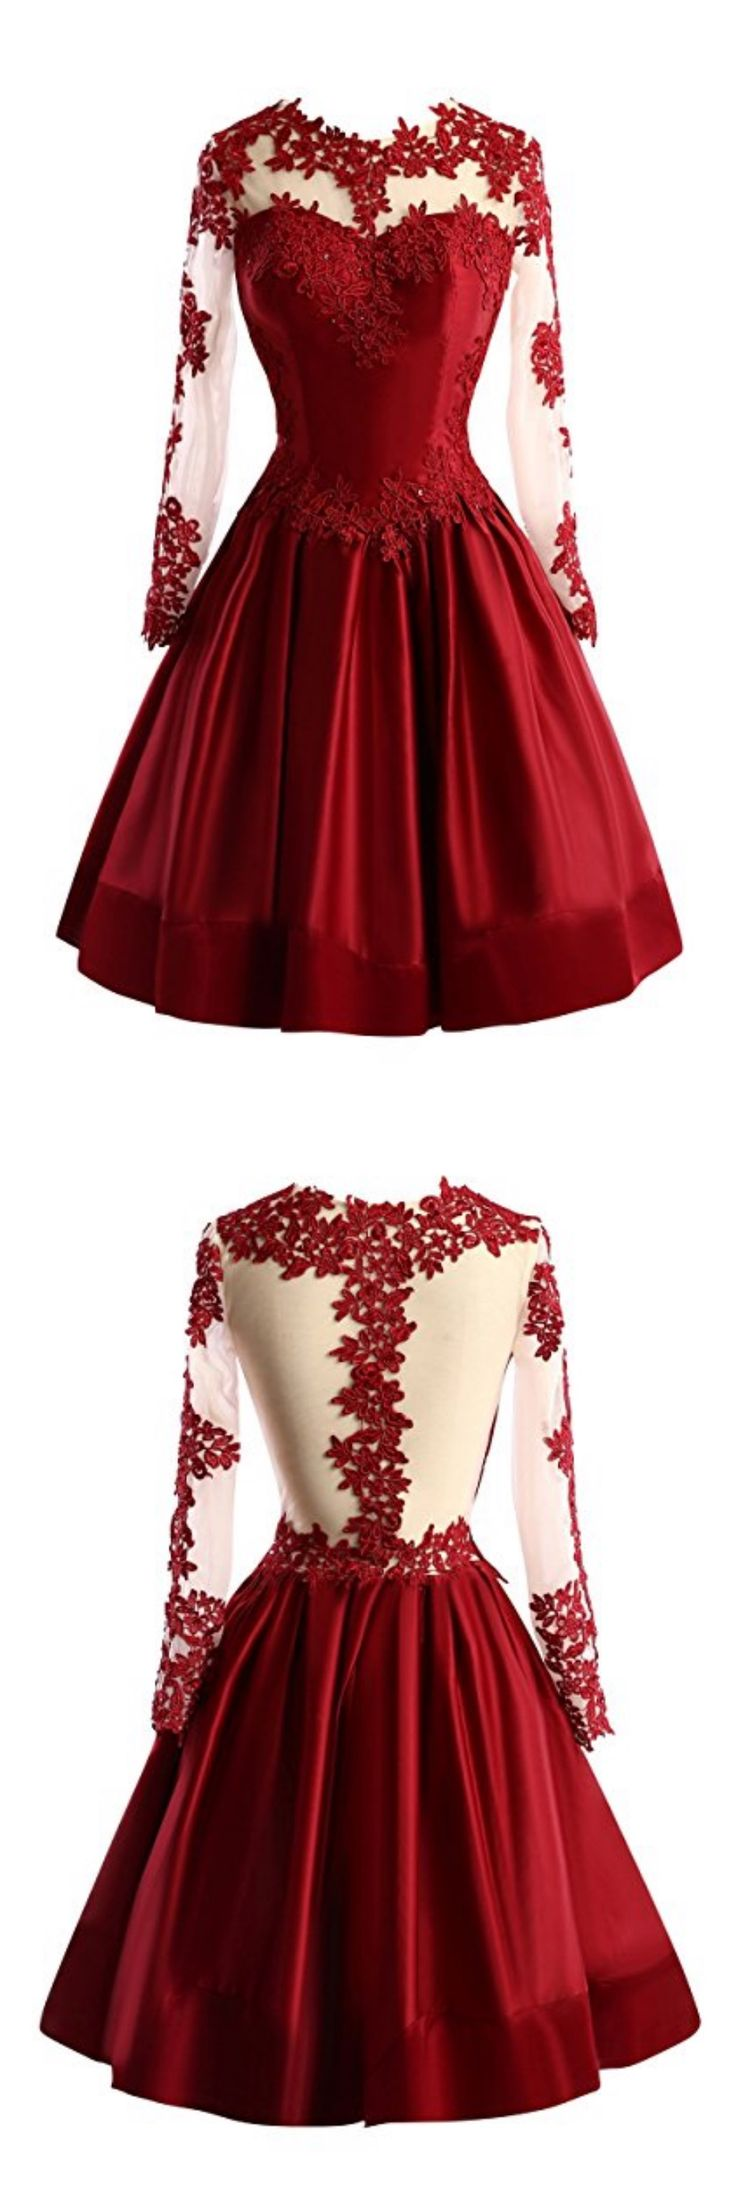 burgundy homecoming dresses, 2017 homecoming dresses, lace homecoming dresses,long sleeves homecoming dresses, homecoming dresses knee length, satin homecoming dresses,cheap homecoming dresses, cocktail dresses, graduation dresses, party dresses,short prom dresses #SIMIBridal #homecomingdresses